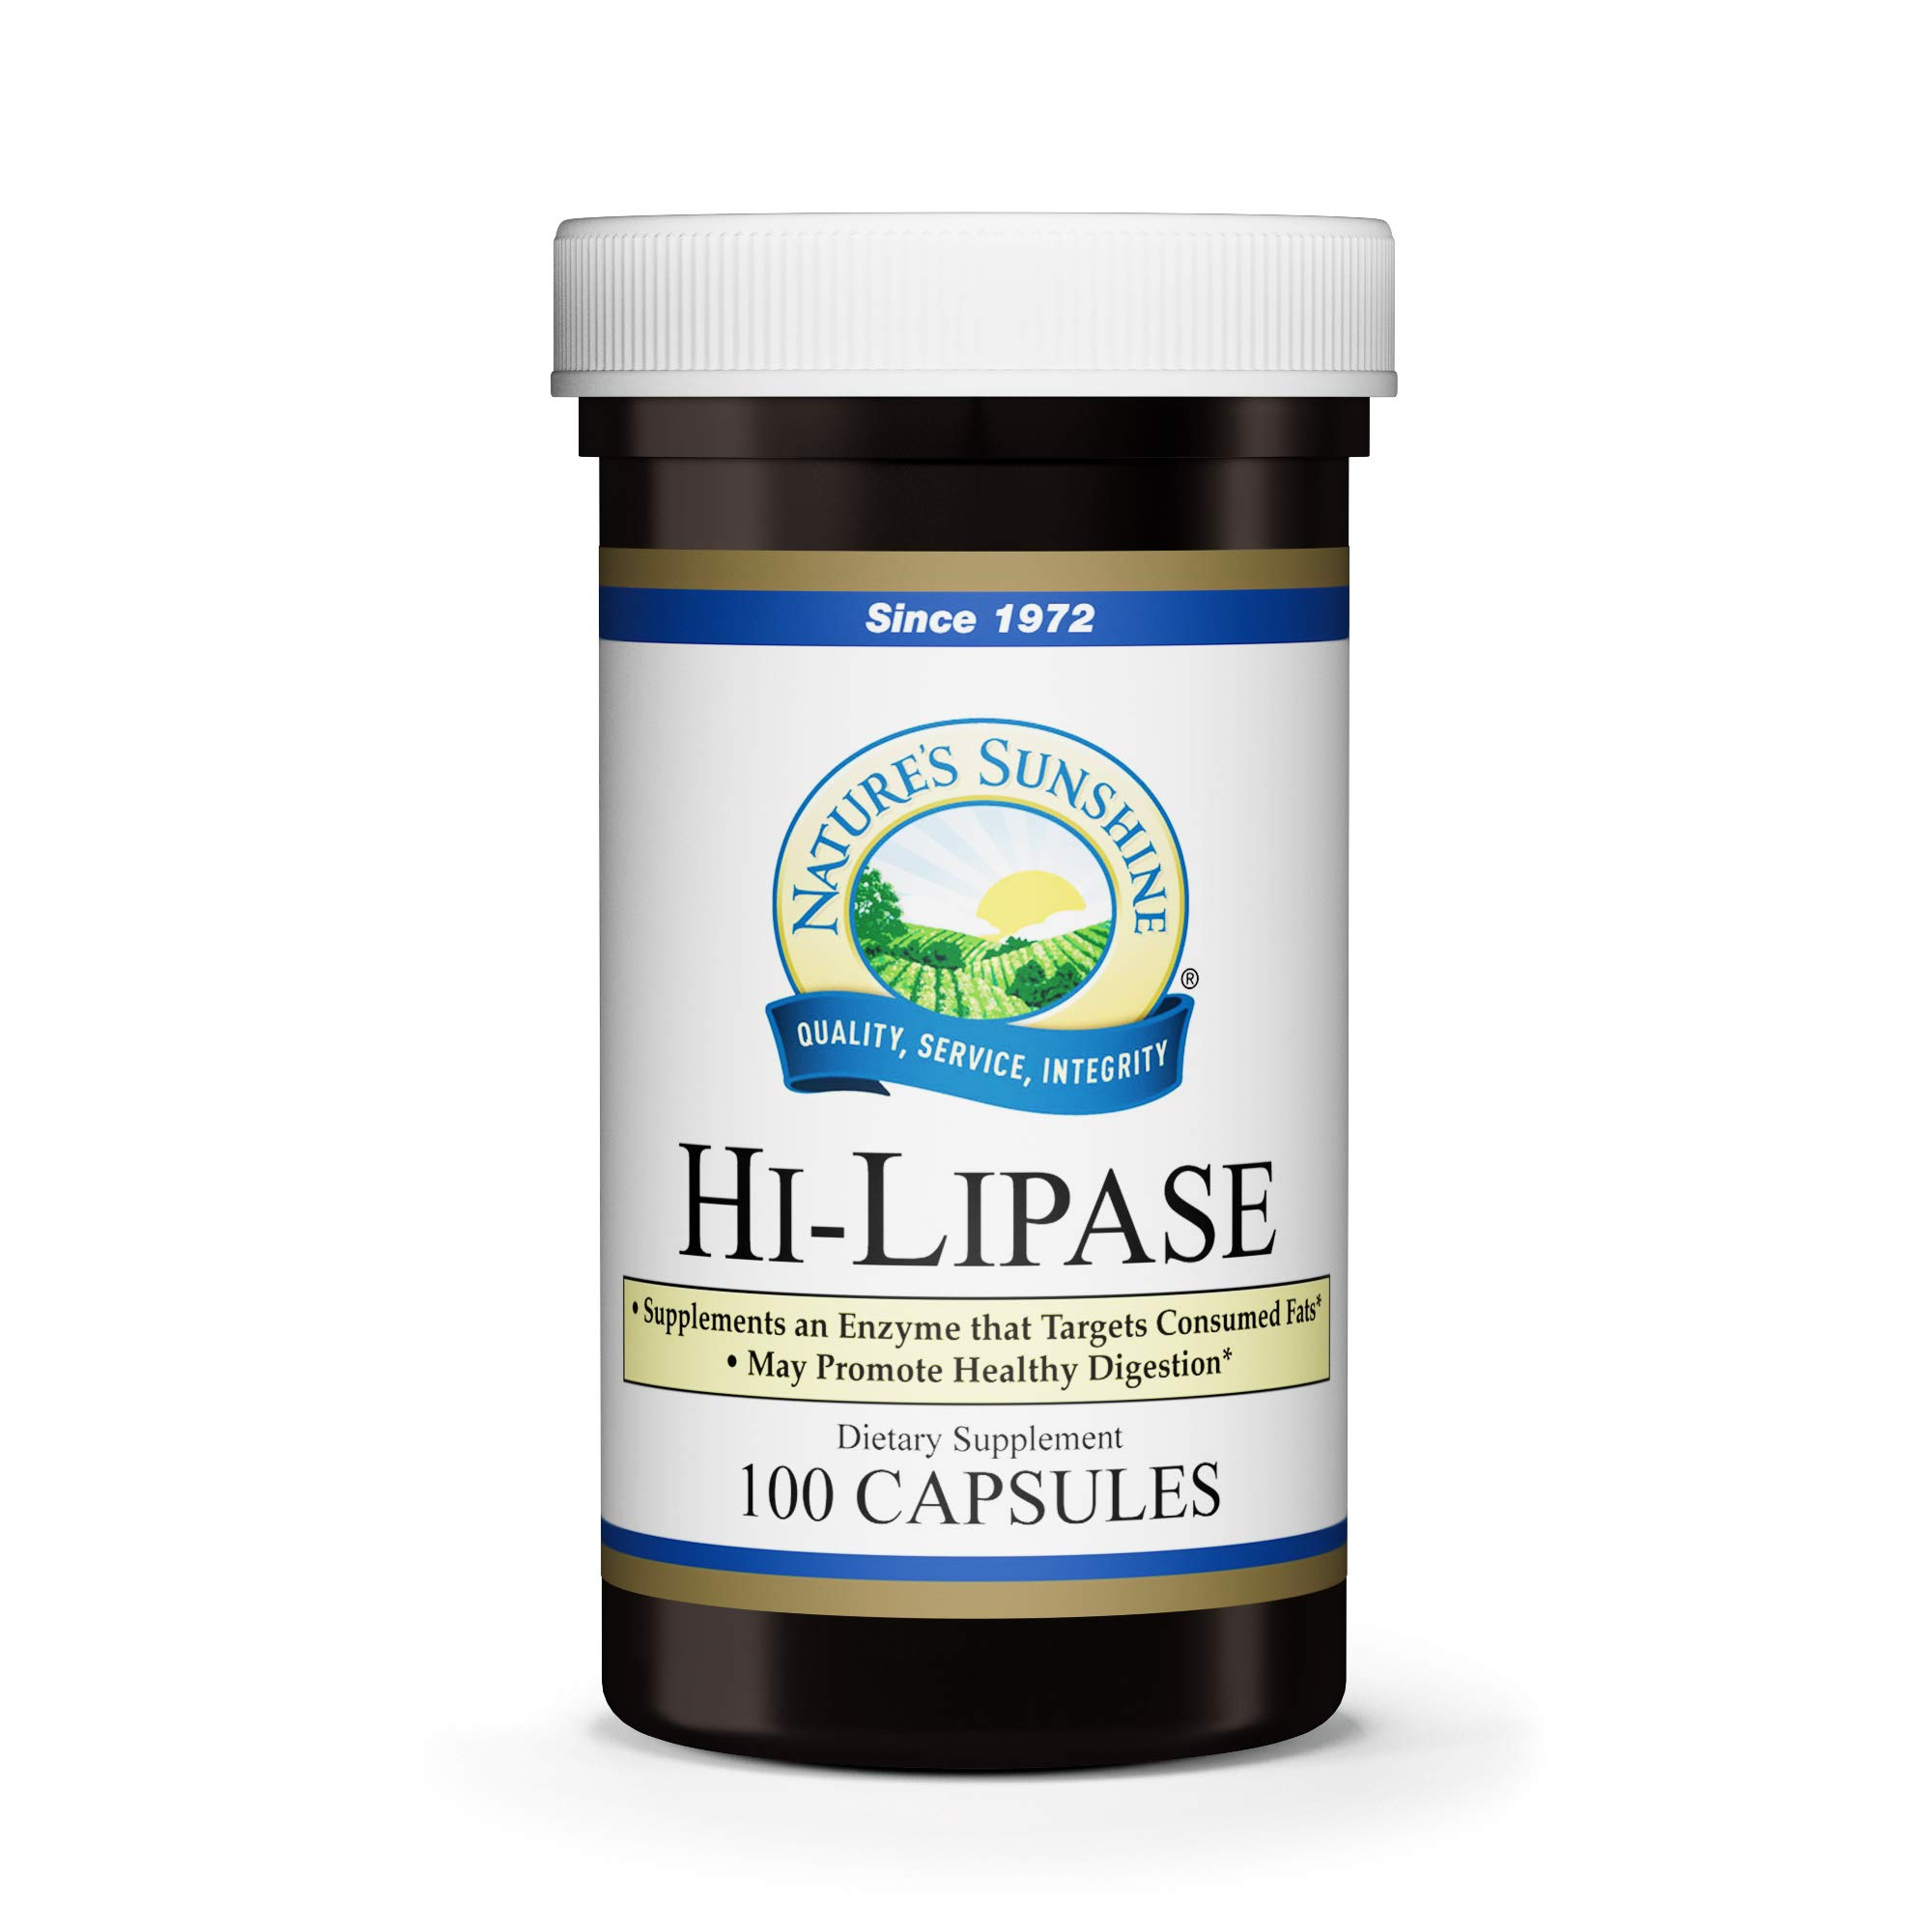 Nature's Sunshine Hi Lipase Dietary Supplement, 100 Capsules   Powerful Enzyme Supplement that Allows the Digestive System to Digest Fats